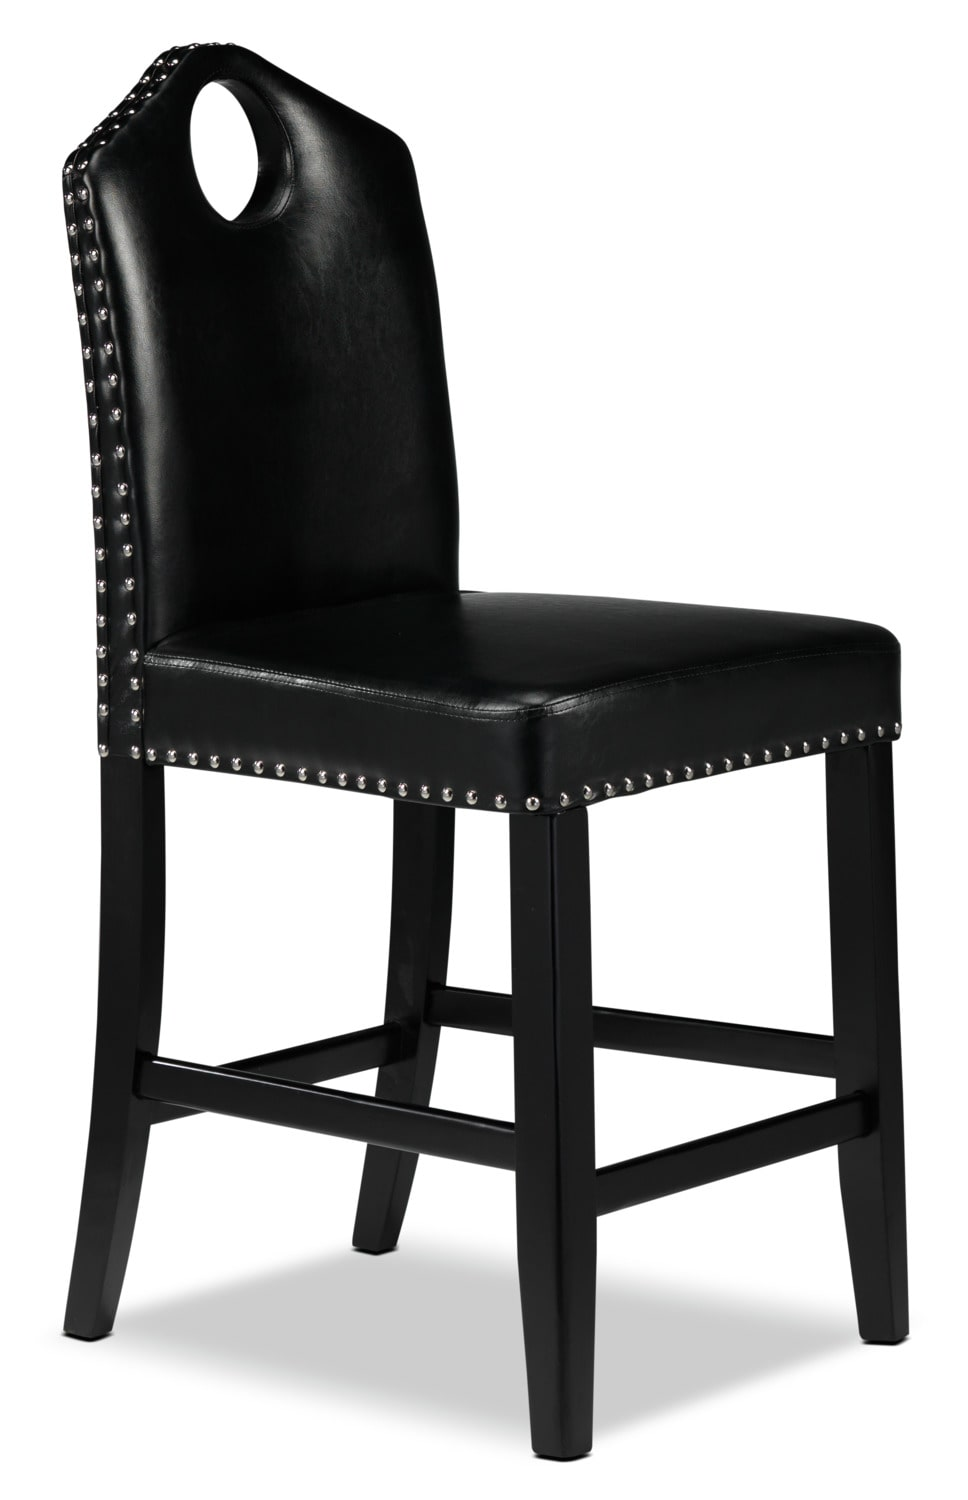 Hammett chaise bistrot noir meubles l on for Chaise bistrot noire